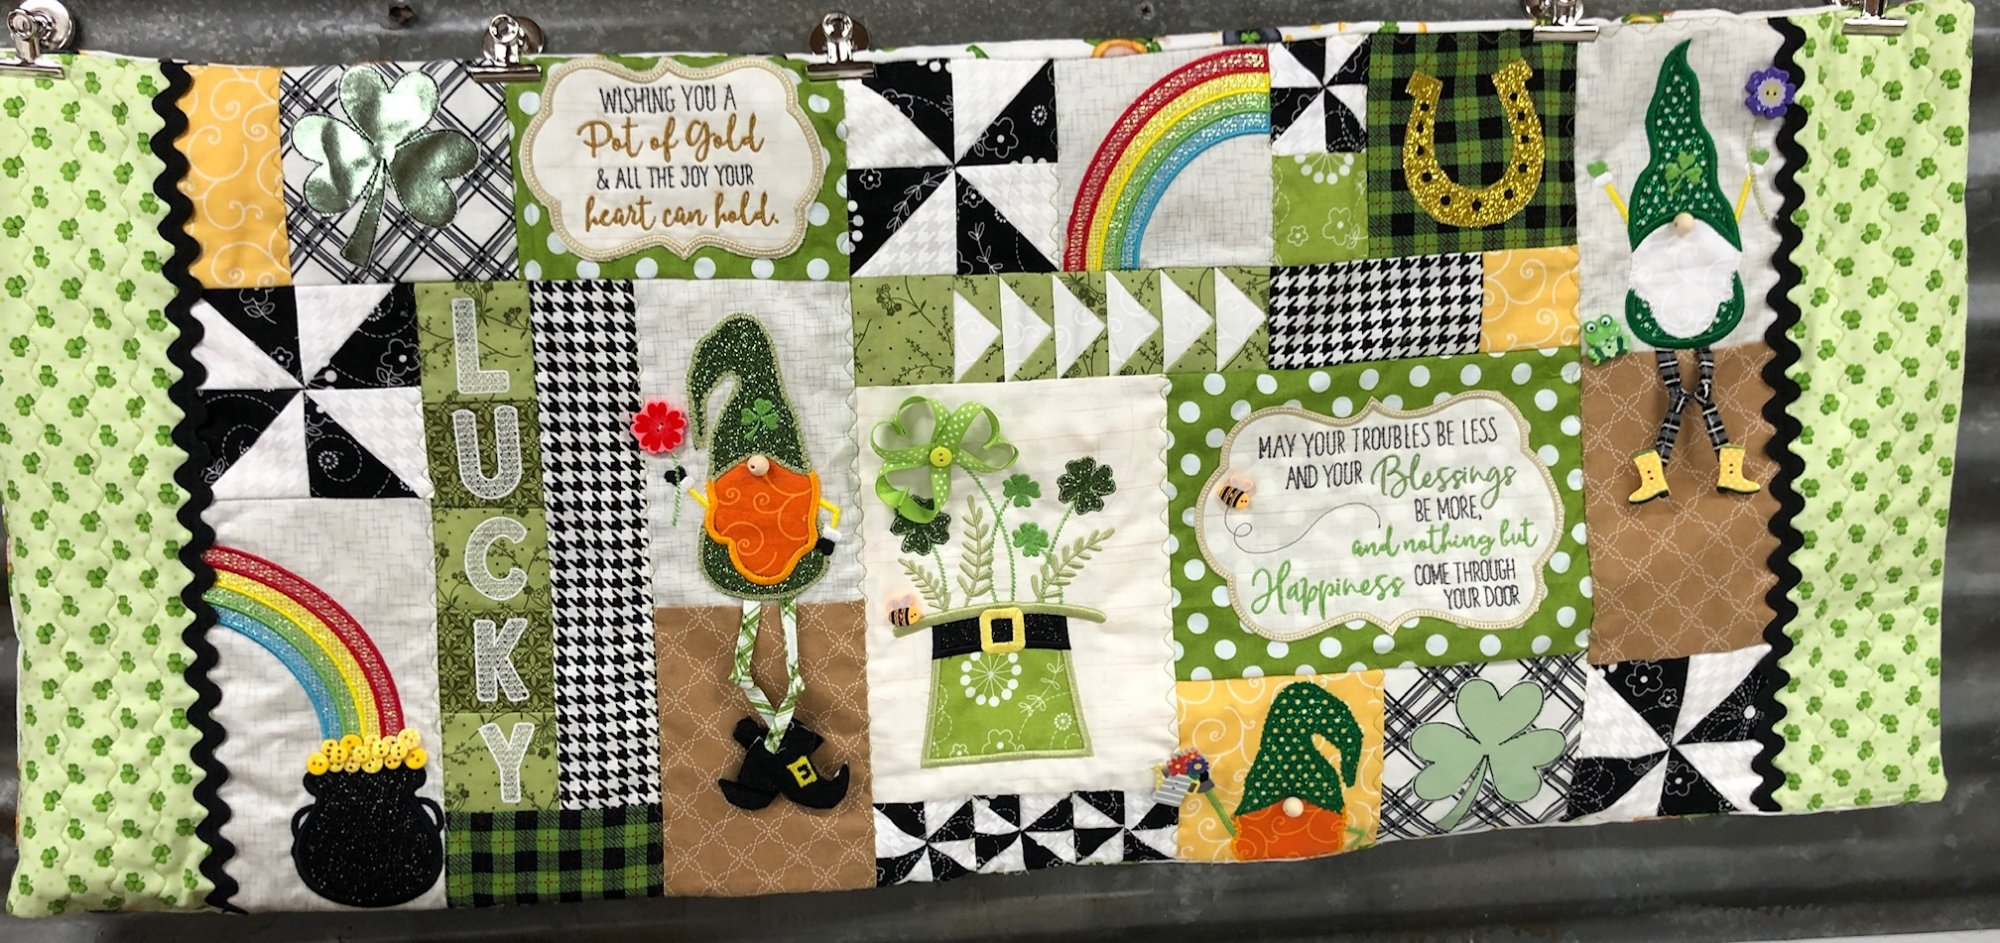 Luck of the Gnome Bench Pillow Fabric & Embellishment Kit